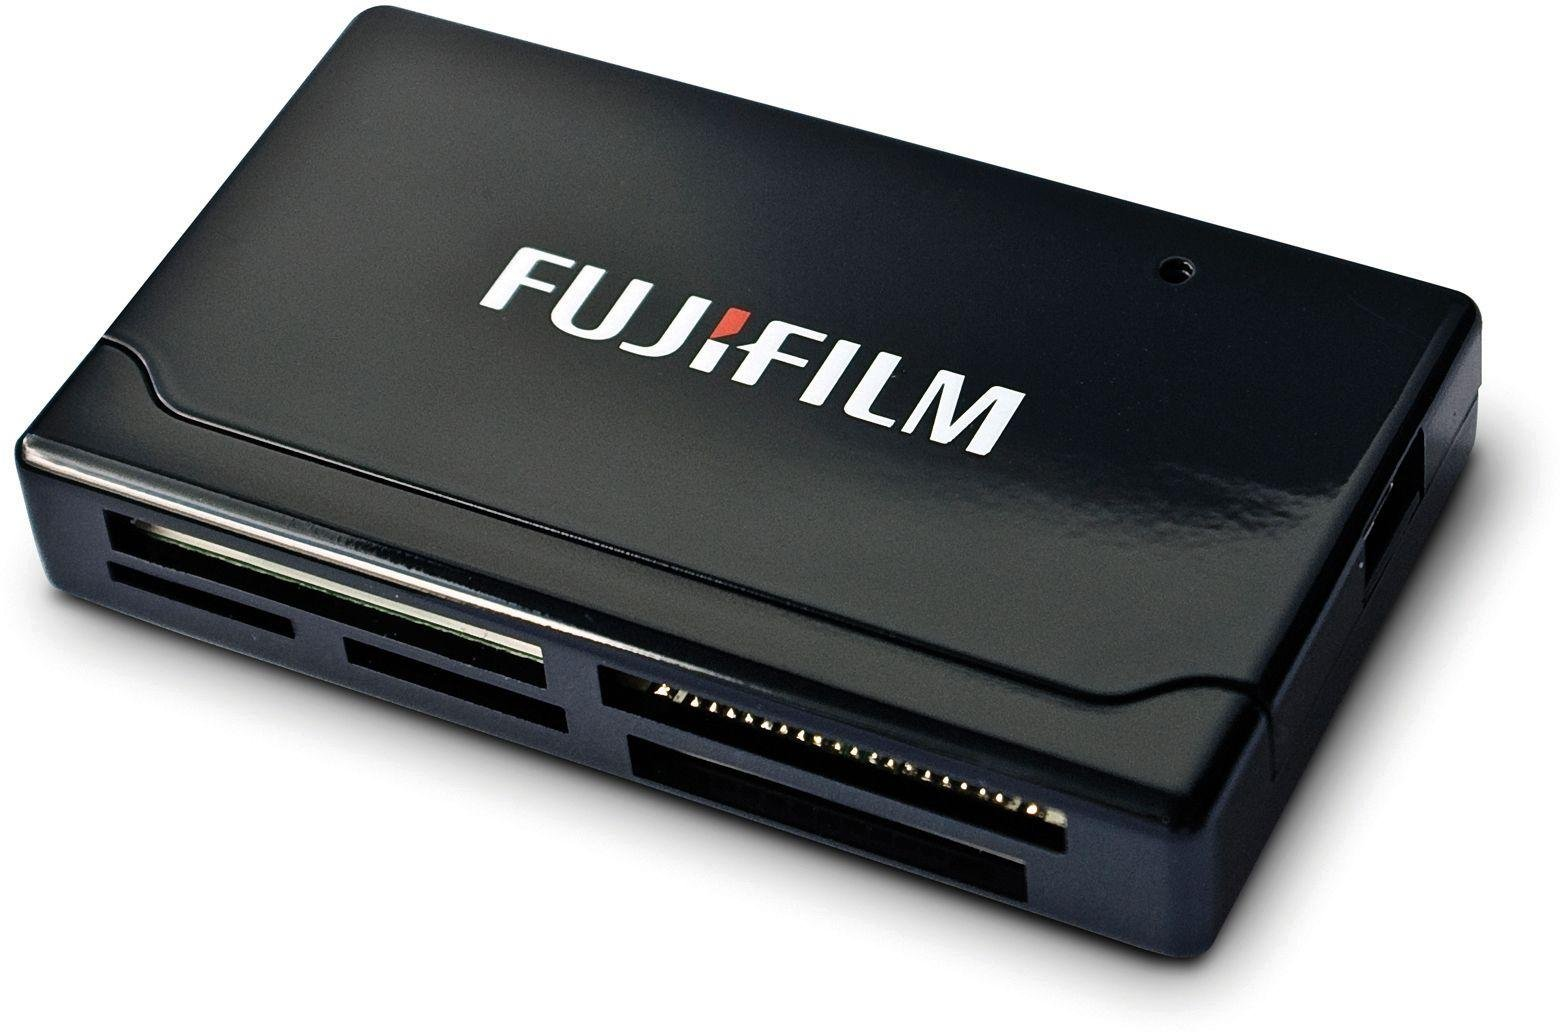 fuji-usb-multi-card-reader-15-card-compatibility